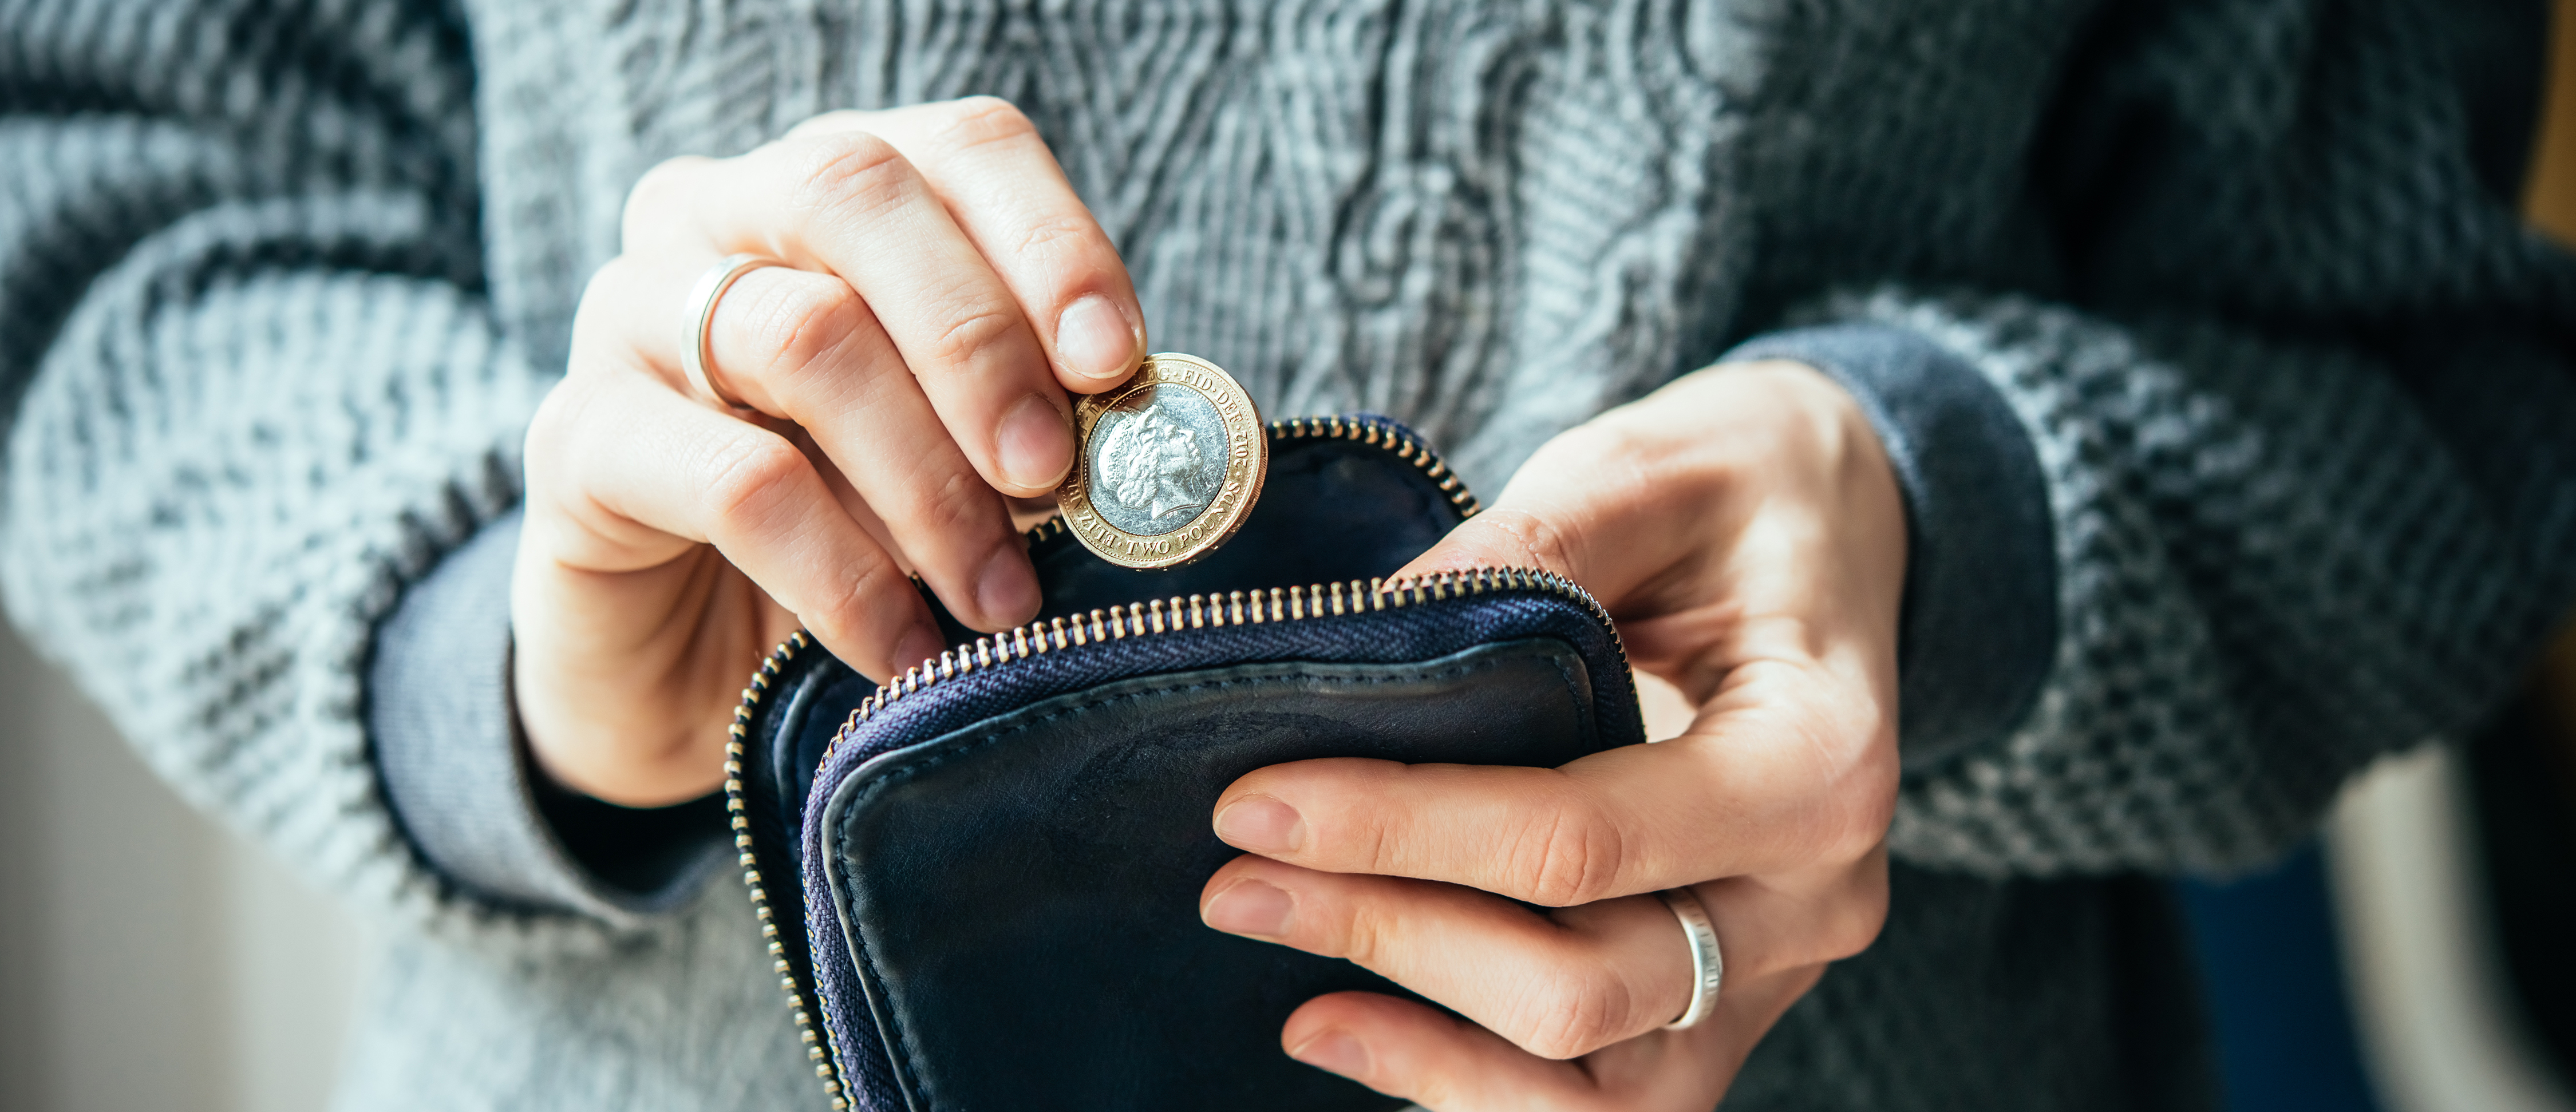 Coin being placed in to purse